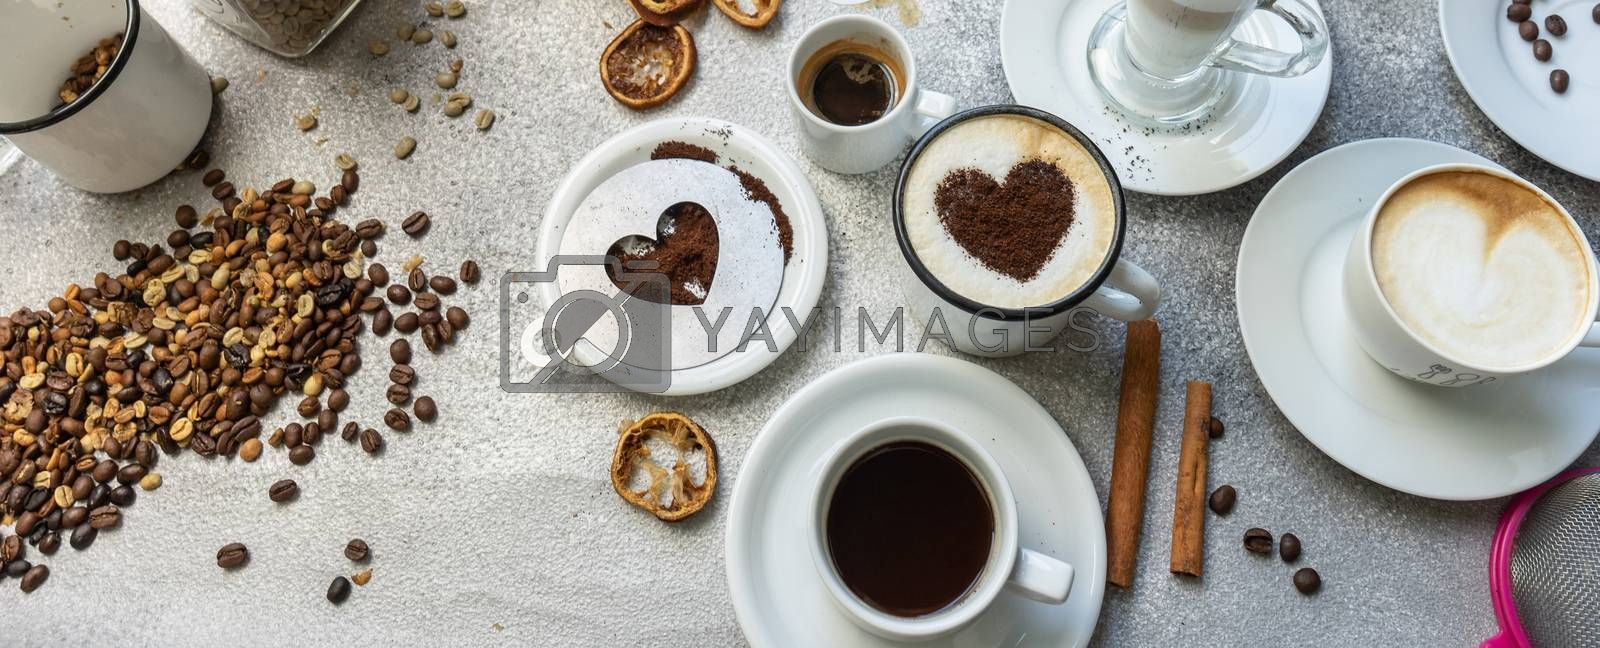 Coffee drink varieties concept on stone background with copy space